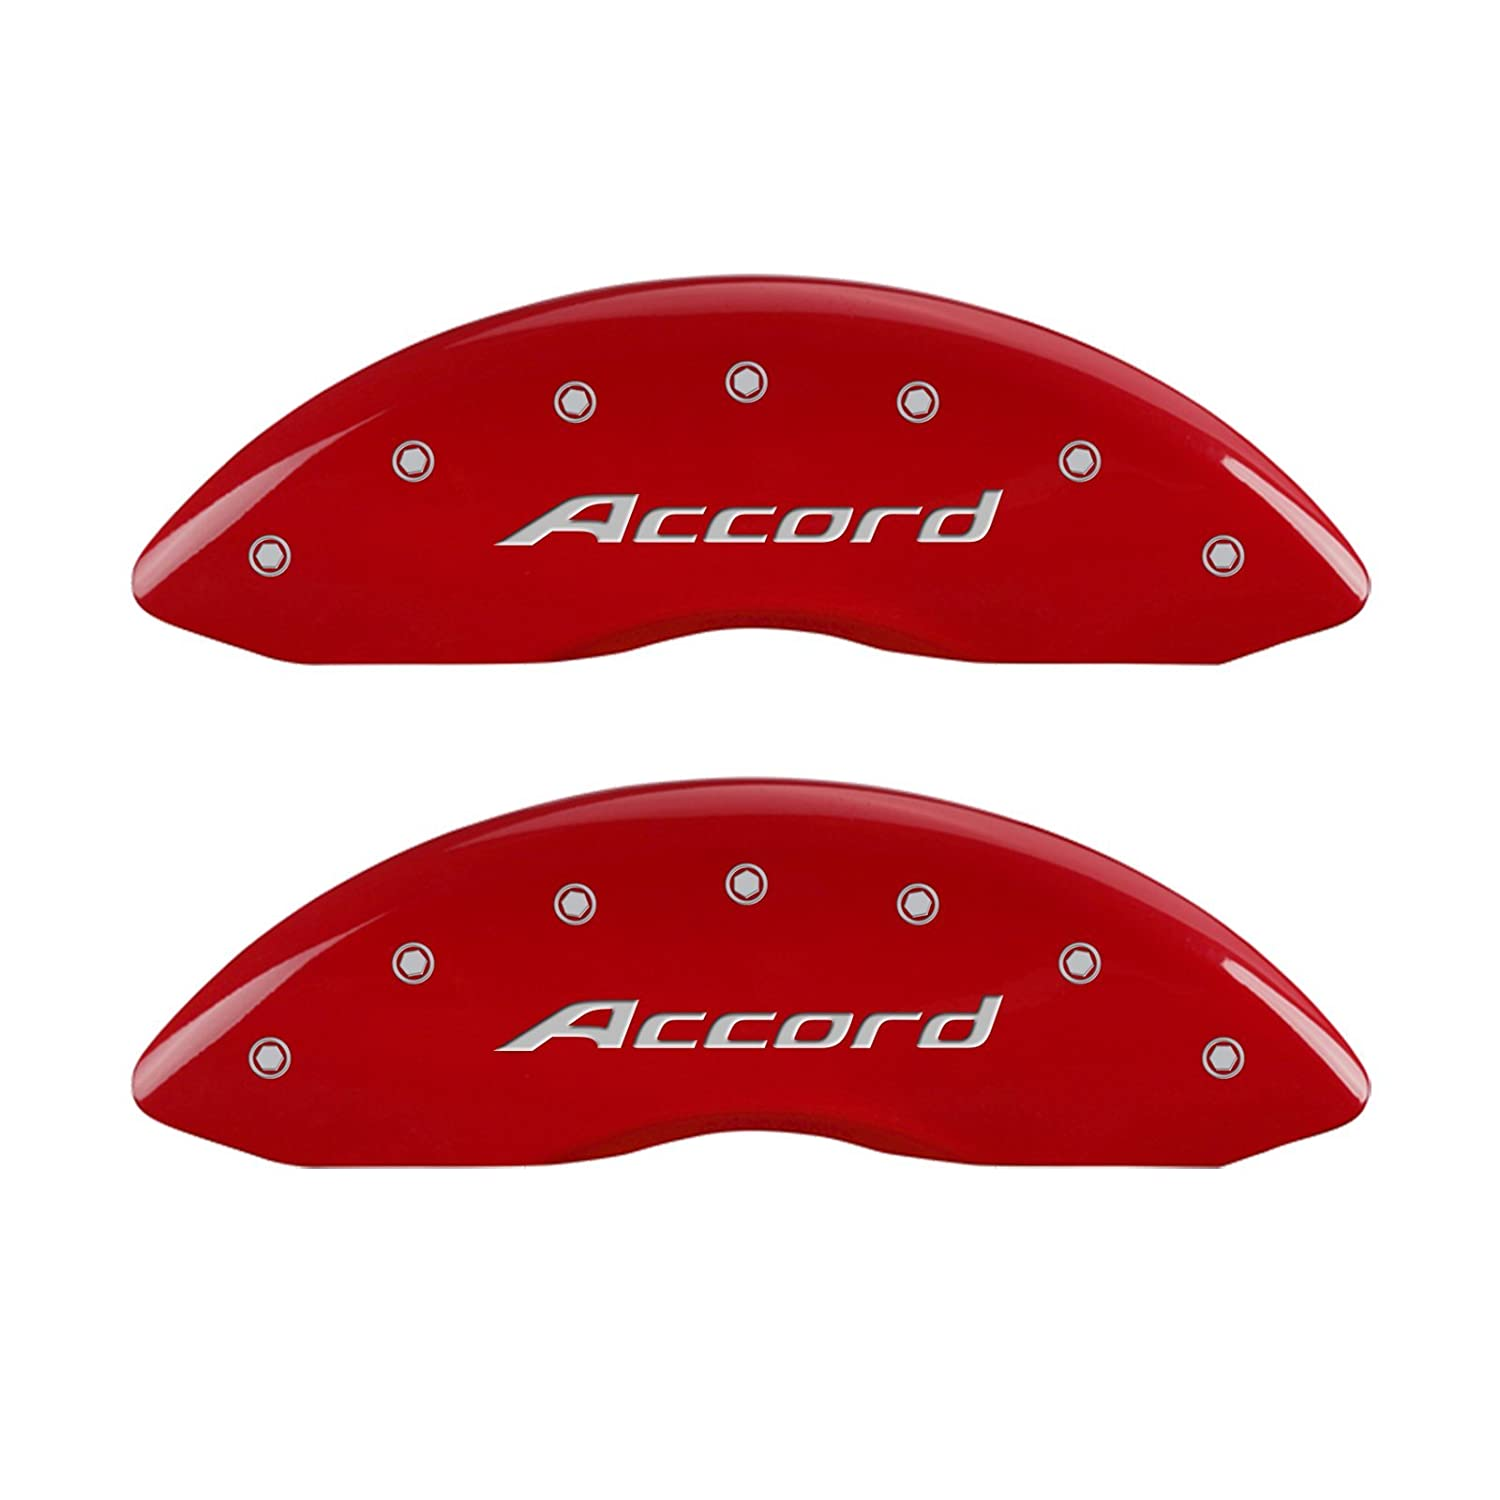 MGP Caliper Covers 20219SACCRD Red Powder Coat Finish Front and Rear Caliper Cover, Set of 4 (Accord Silver Characters, Engraved)